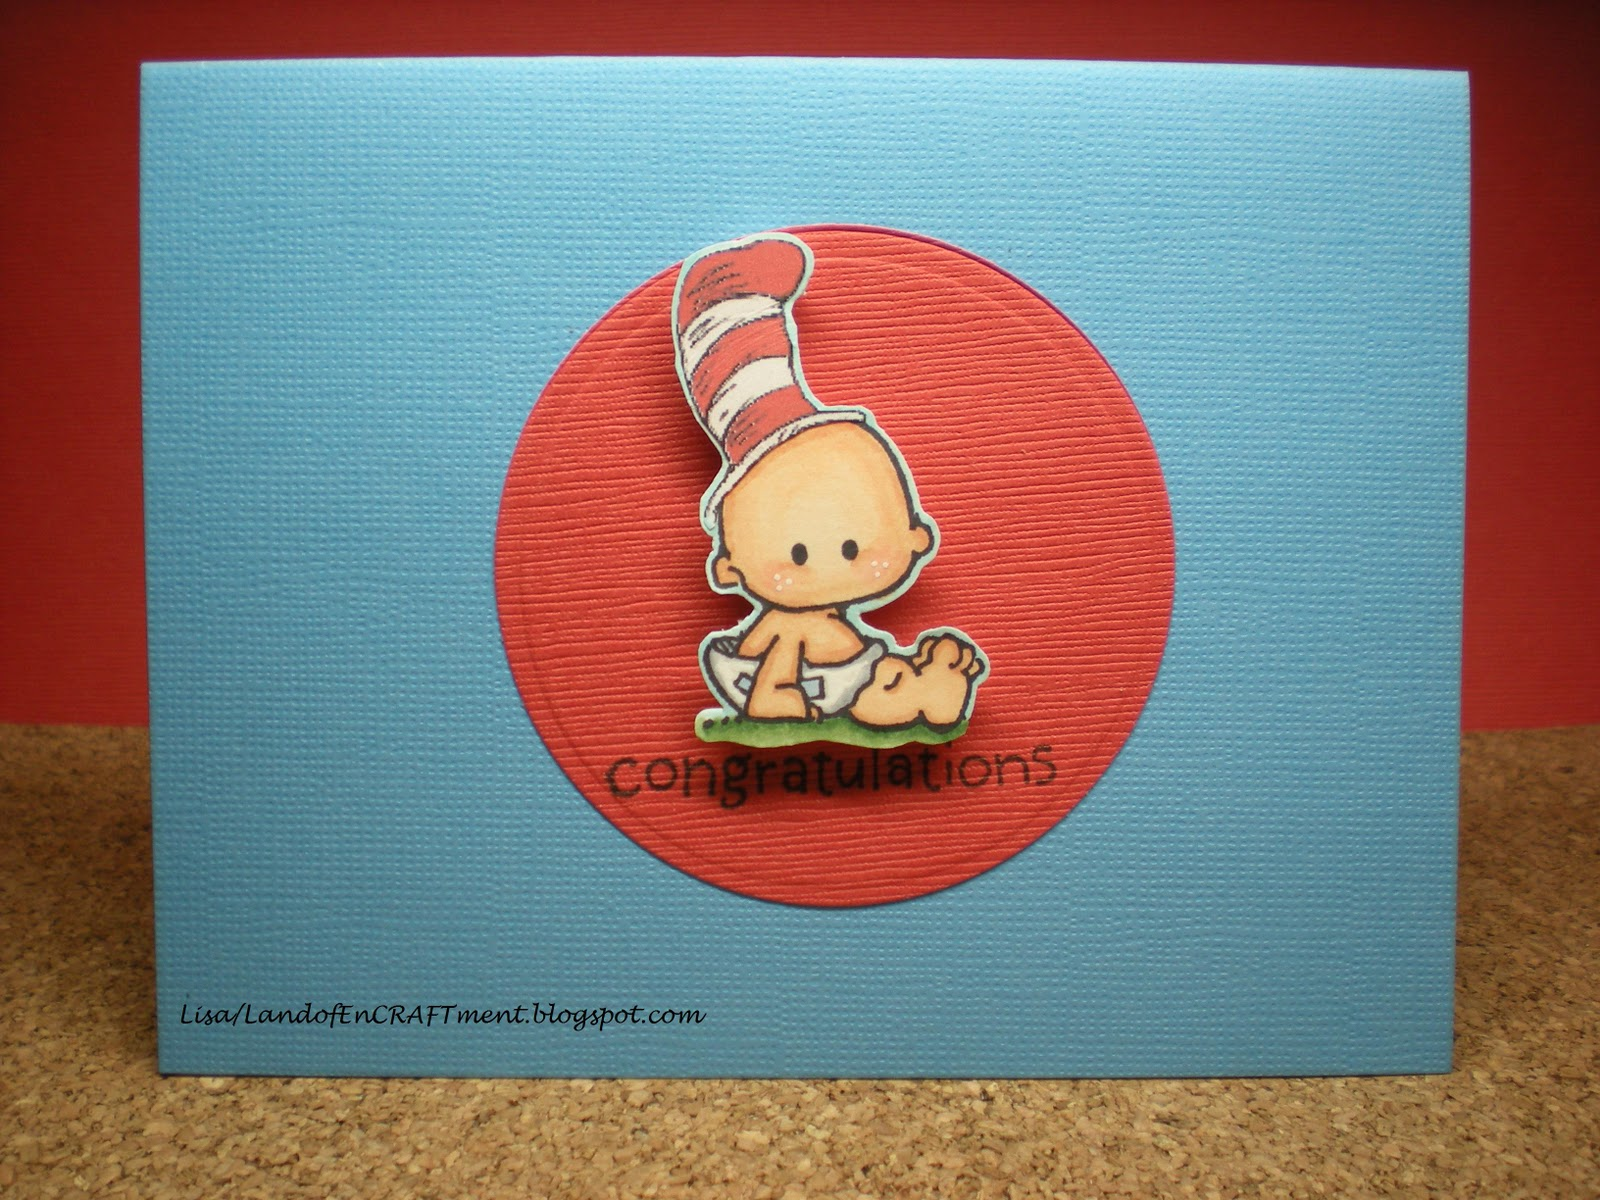 Land of Encraftment: Dr. Seuss Themed Baby Shower!